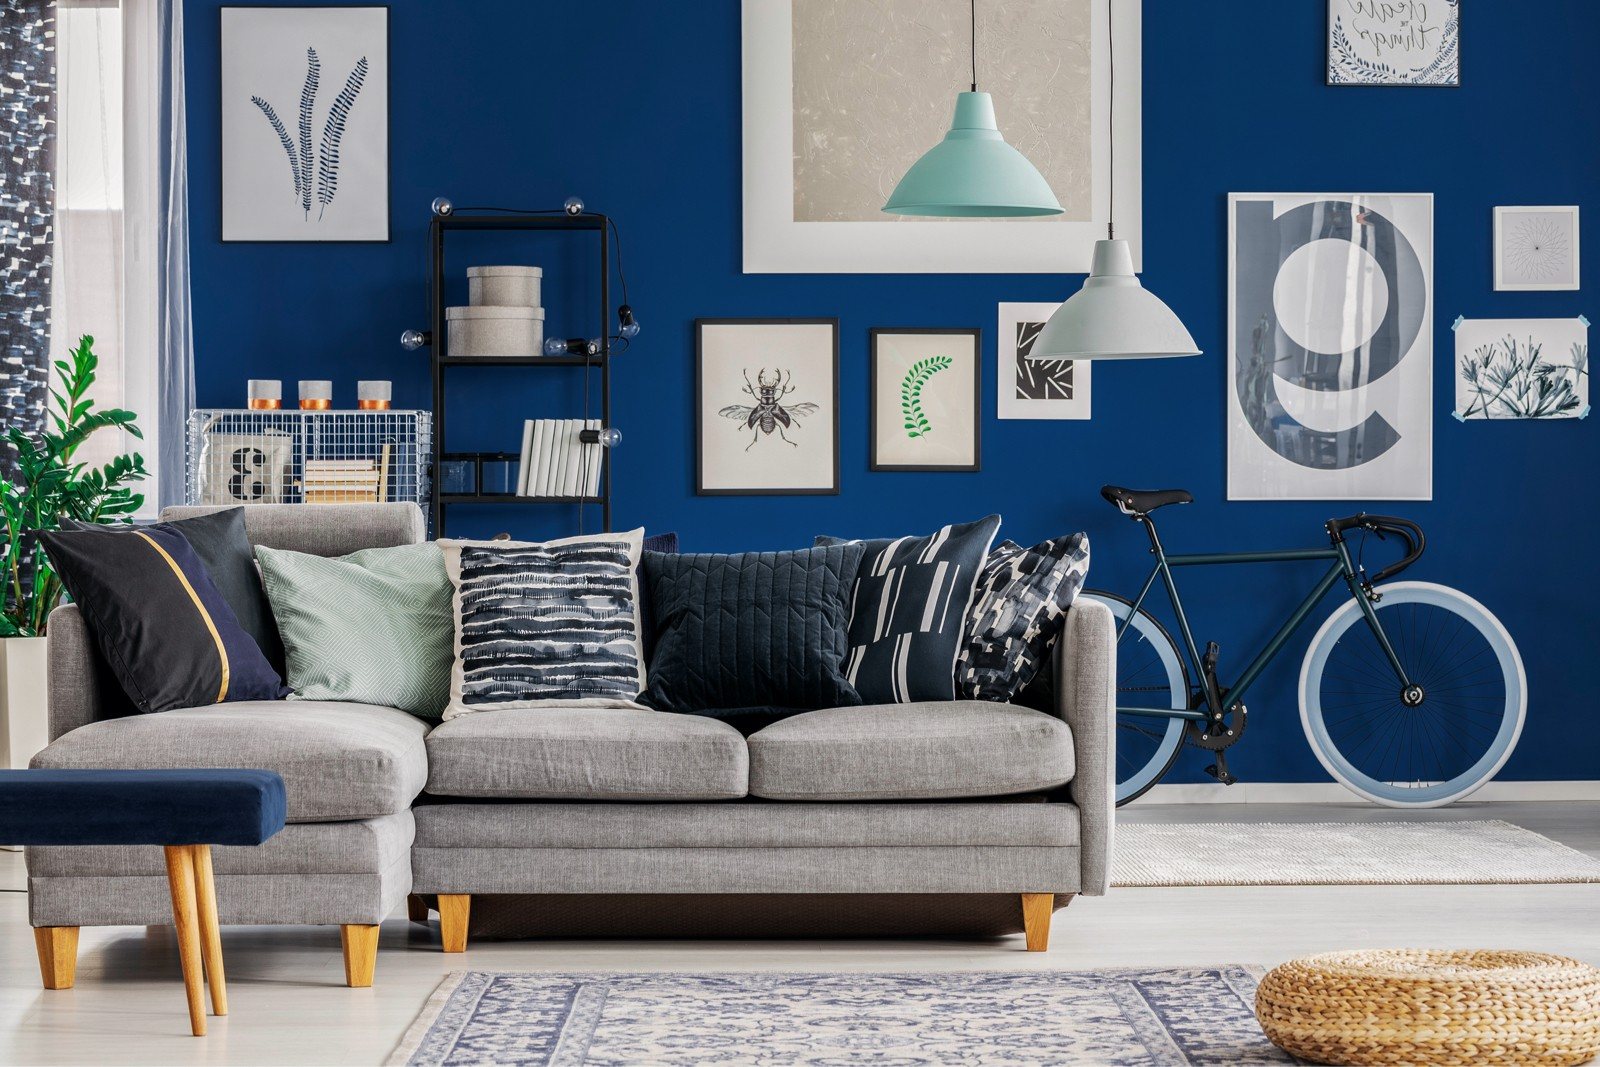 Maximalism Style & Why We Love It